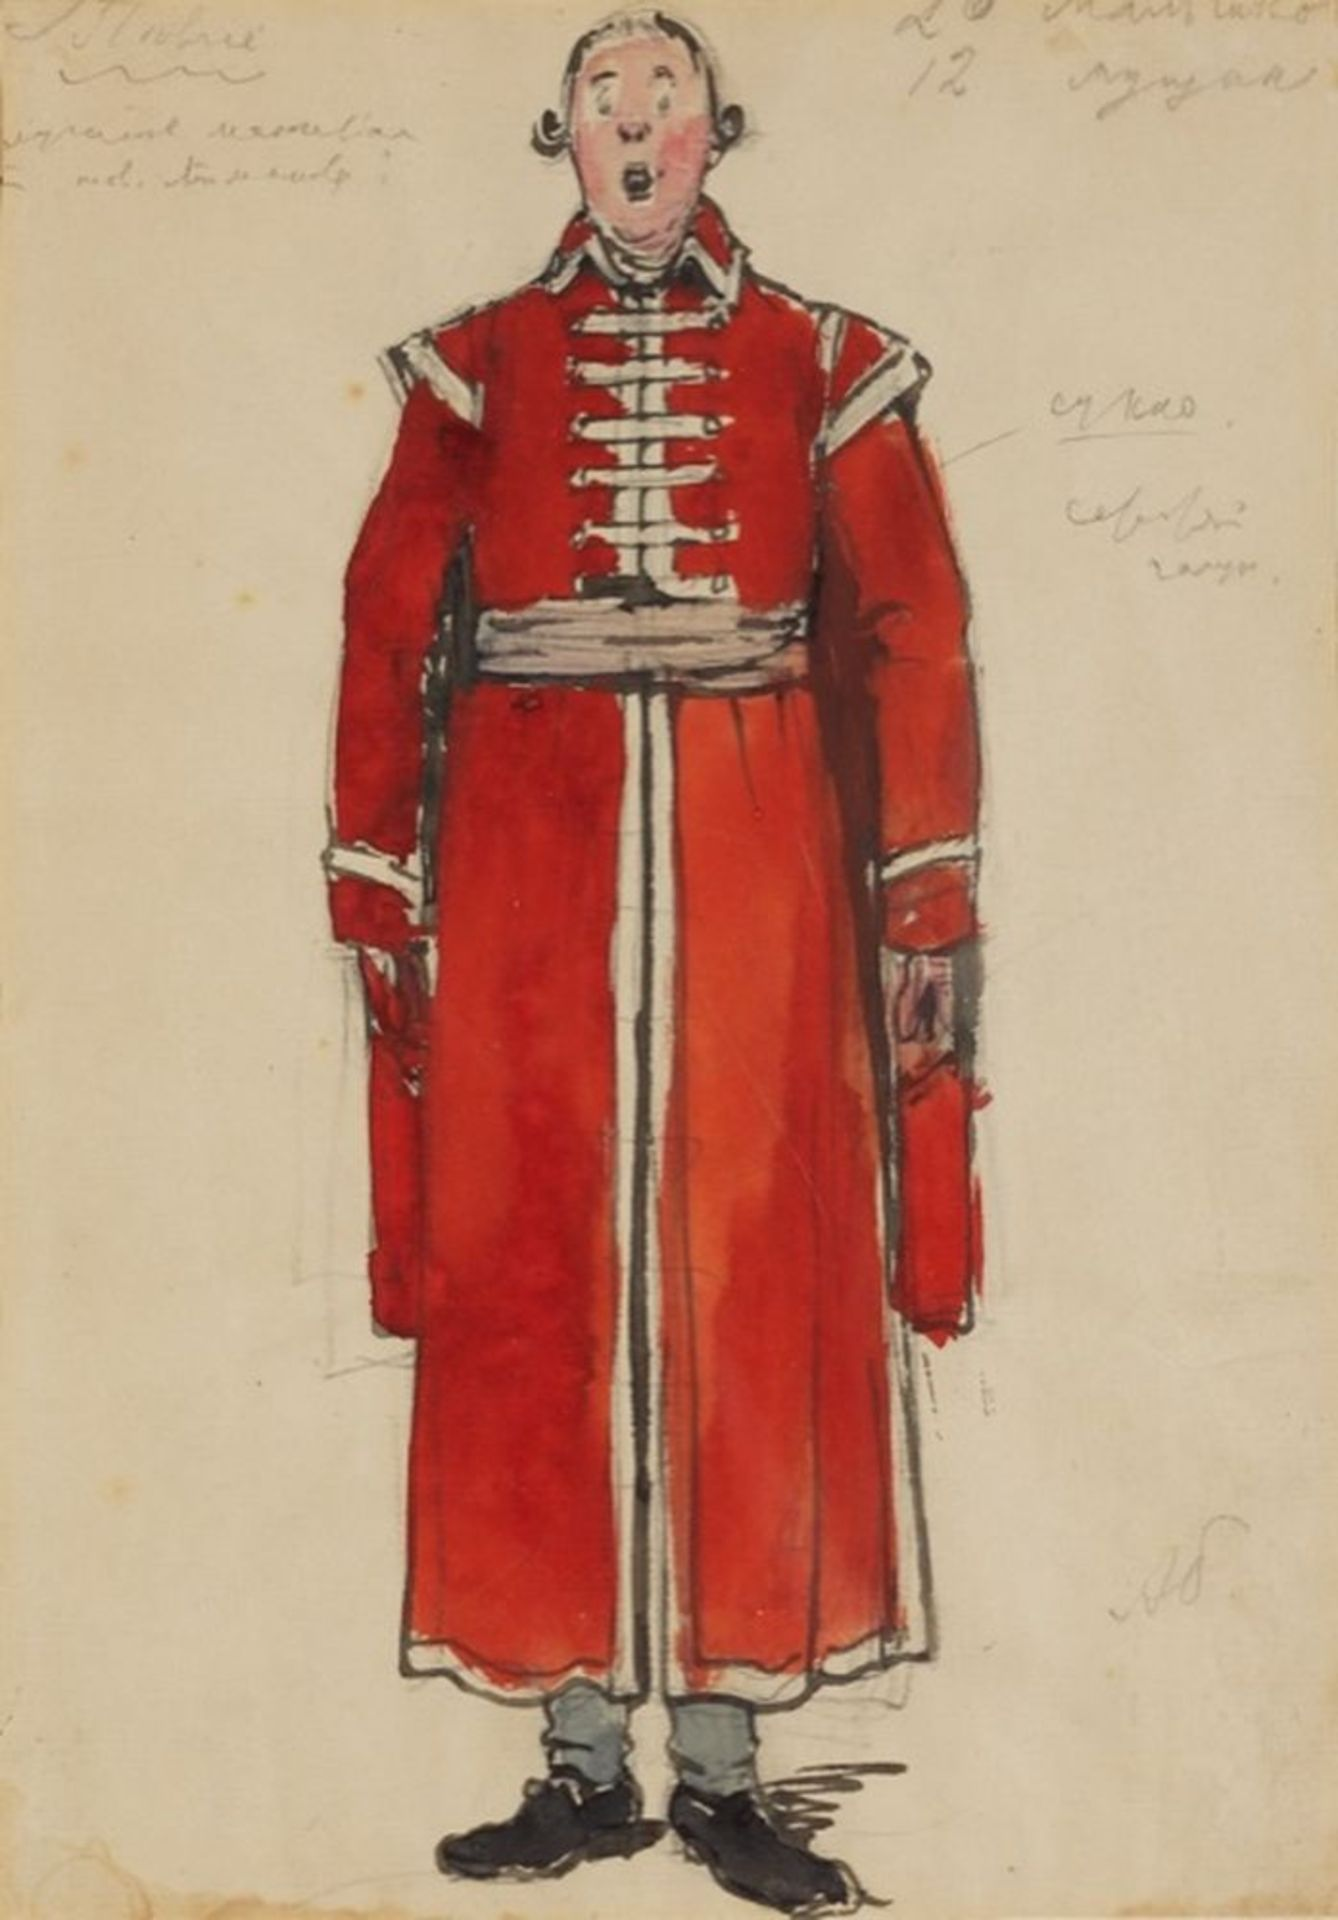 Los 21 - ALEXANDRE BENOIS (1881-1962) Costume design for a chorister - signed with initials [...]